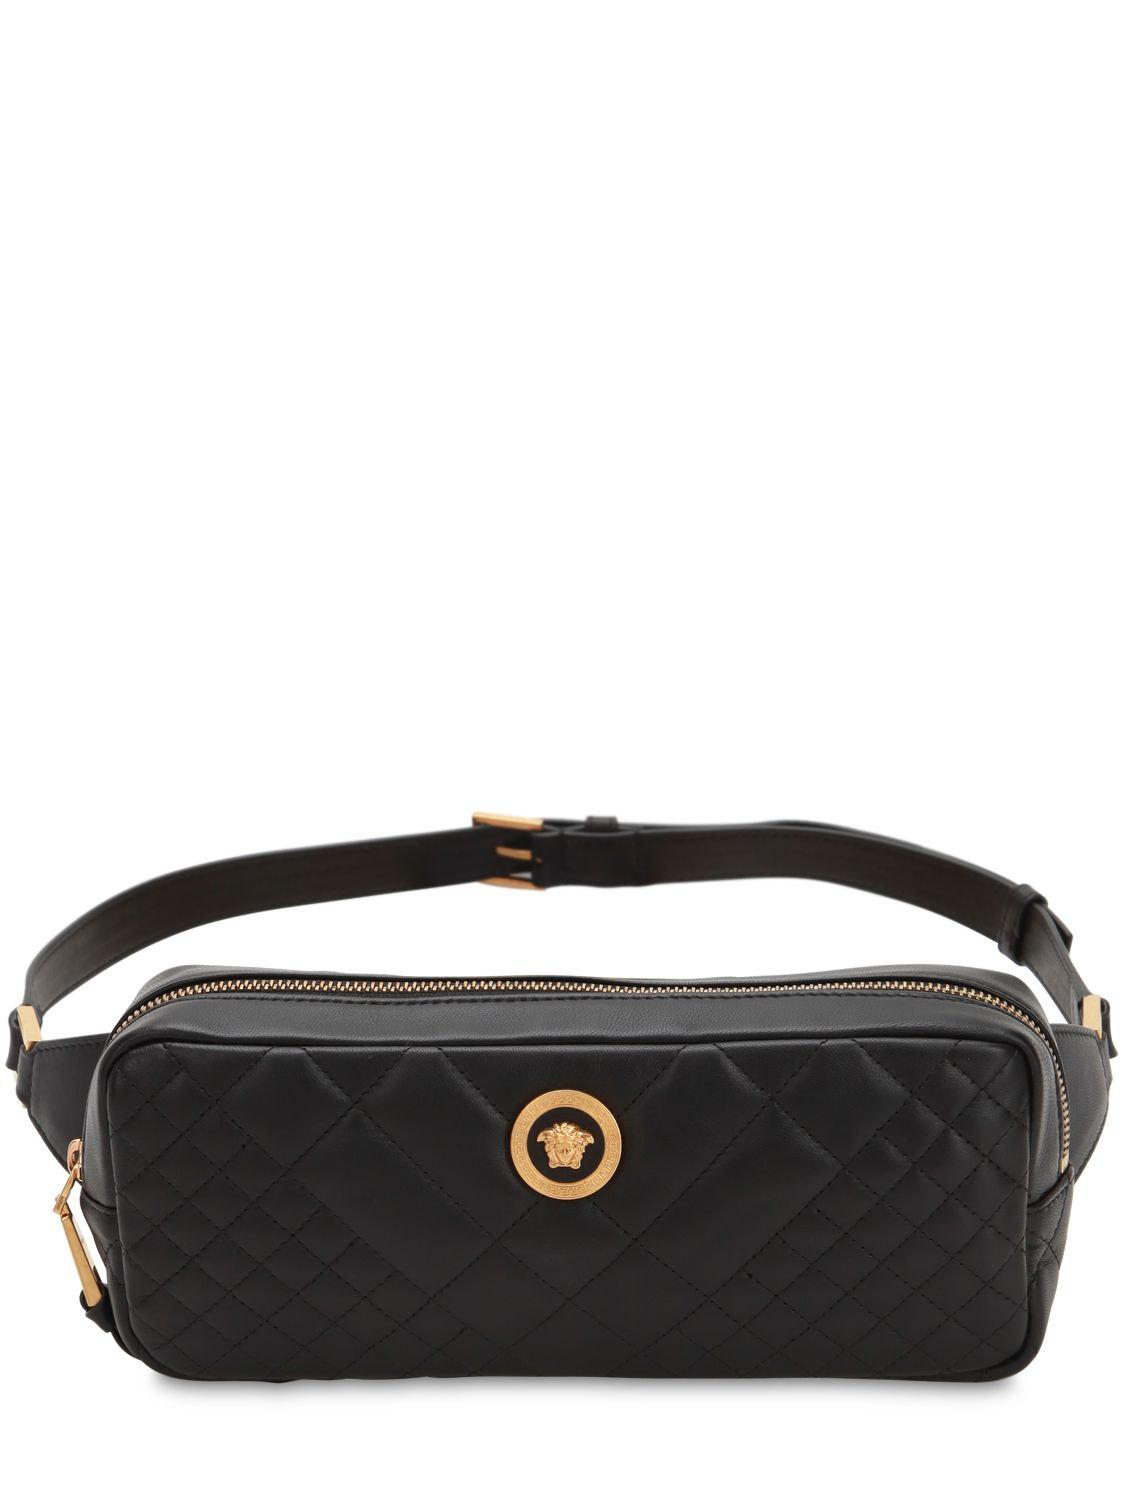 19df2c0ad8 Versace Icon Quilted Leather Belt Bag in Black - Lyst